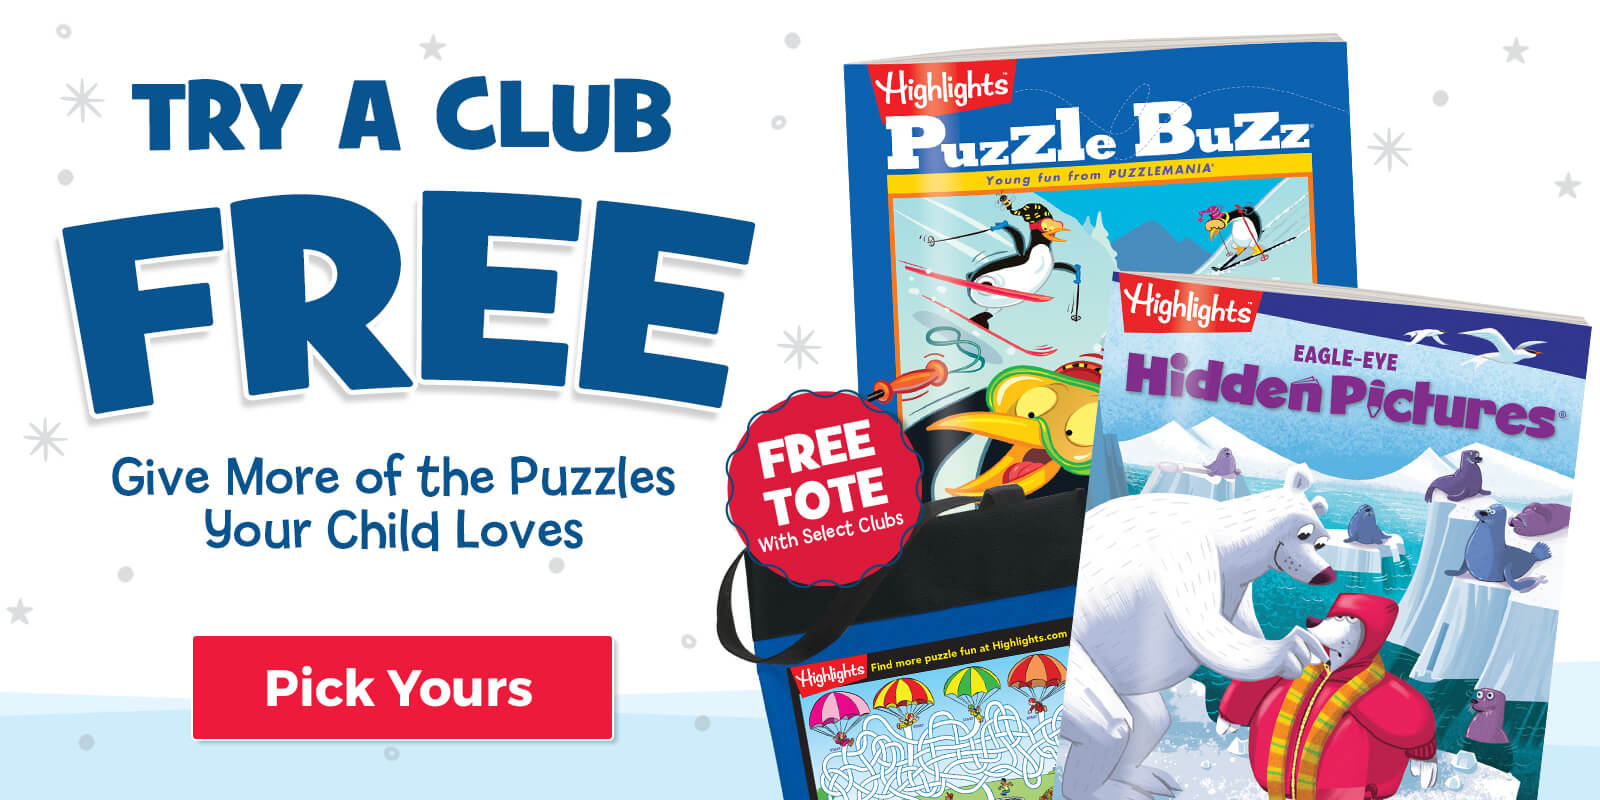 Try a Club FREE and get a FREE tote!